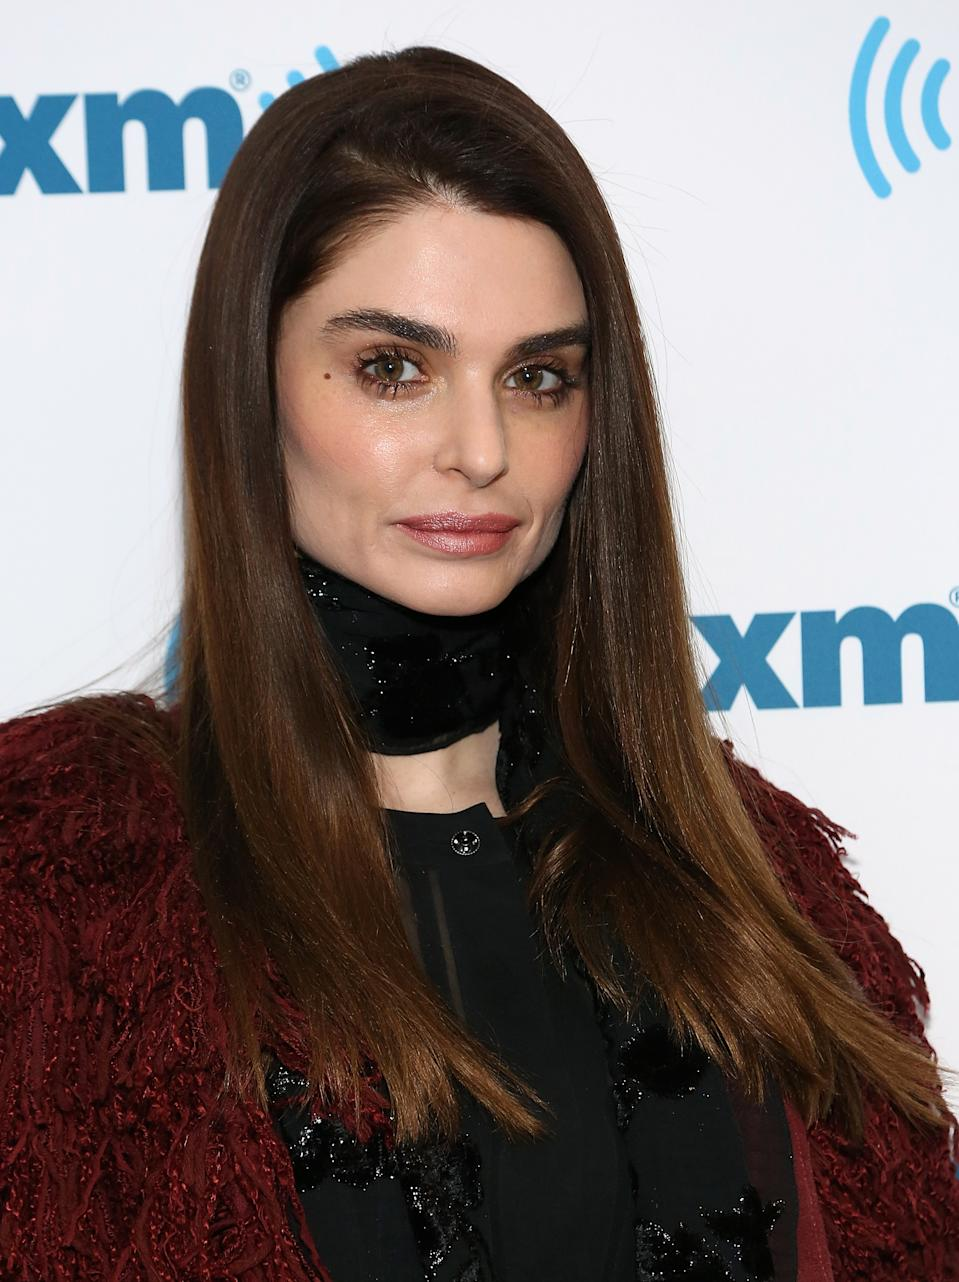 NEW YORK, NY - APRIL 02: (EXCLUSIVE COVERAGE) Aimee Osbourne visits SiriusXM Studios on April 2, 2015 in New York City. (Photo by Monica Schipper/Getty Images)